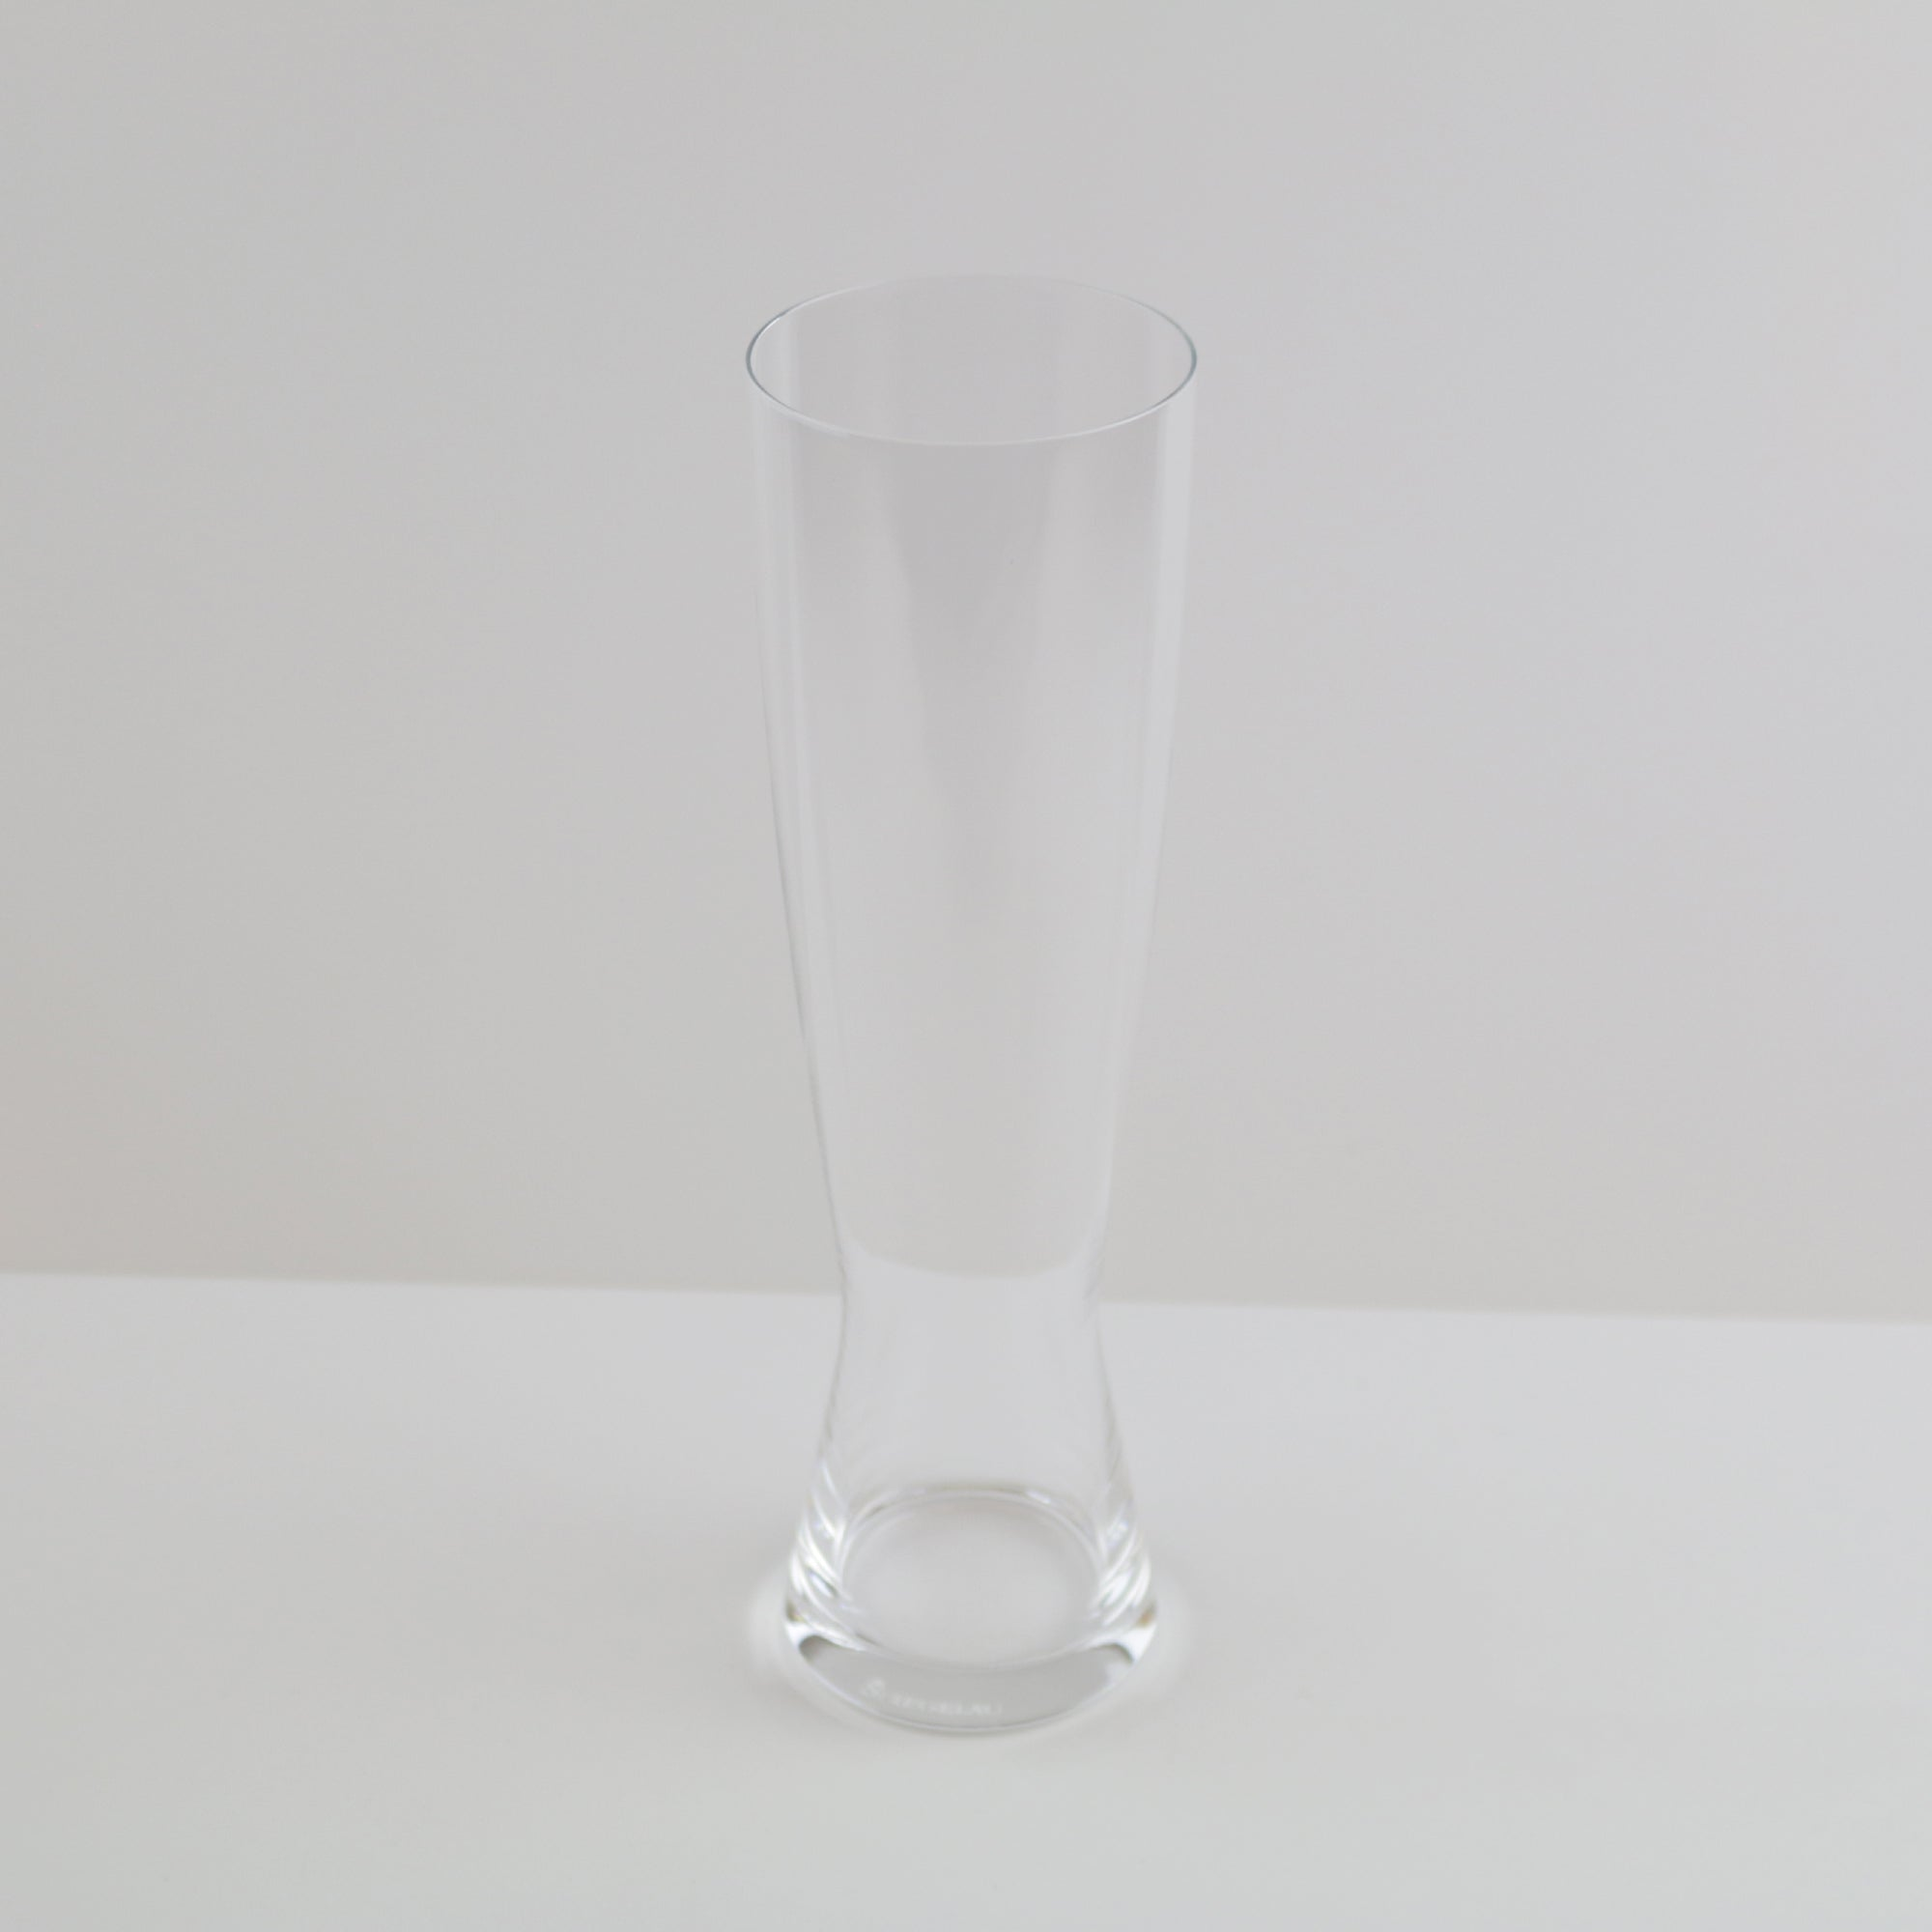 Spiegelau Pilsner Glass (Set of 4)